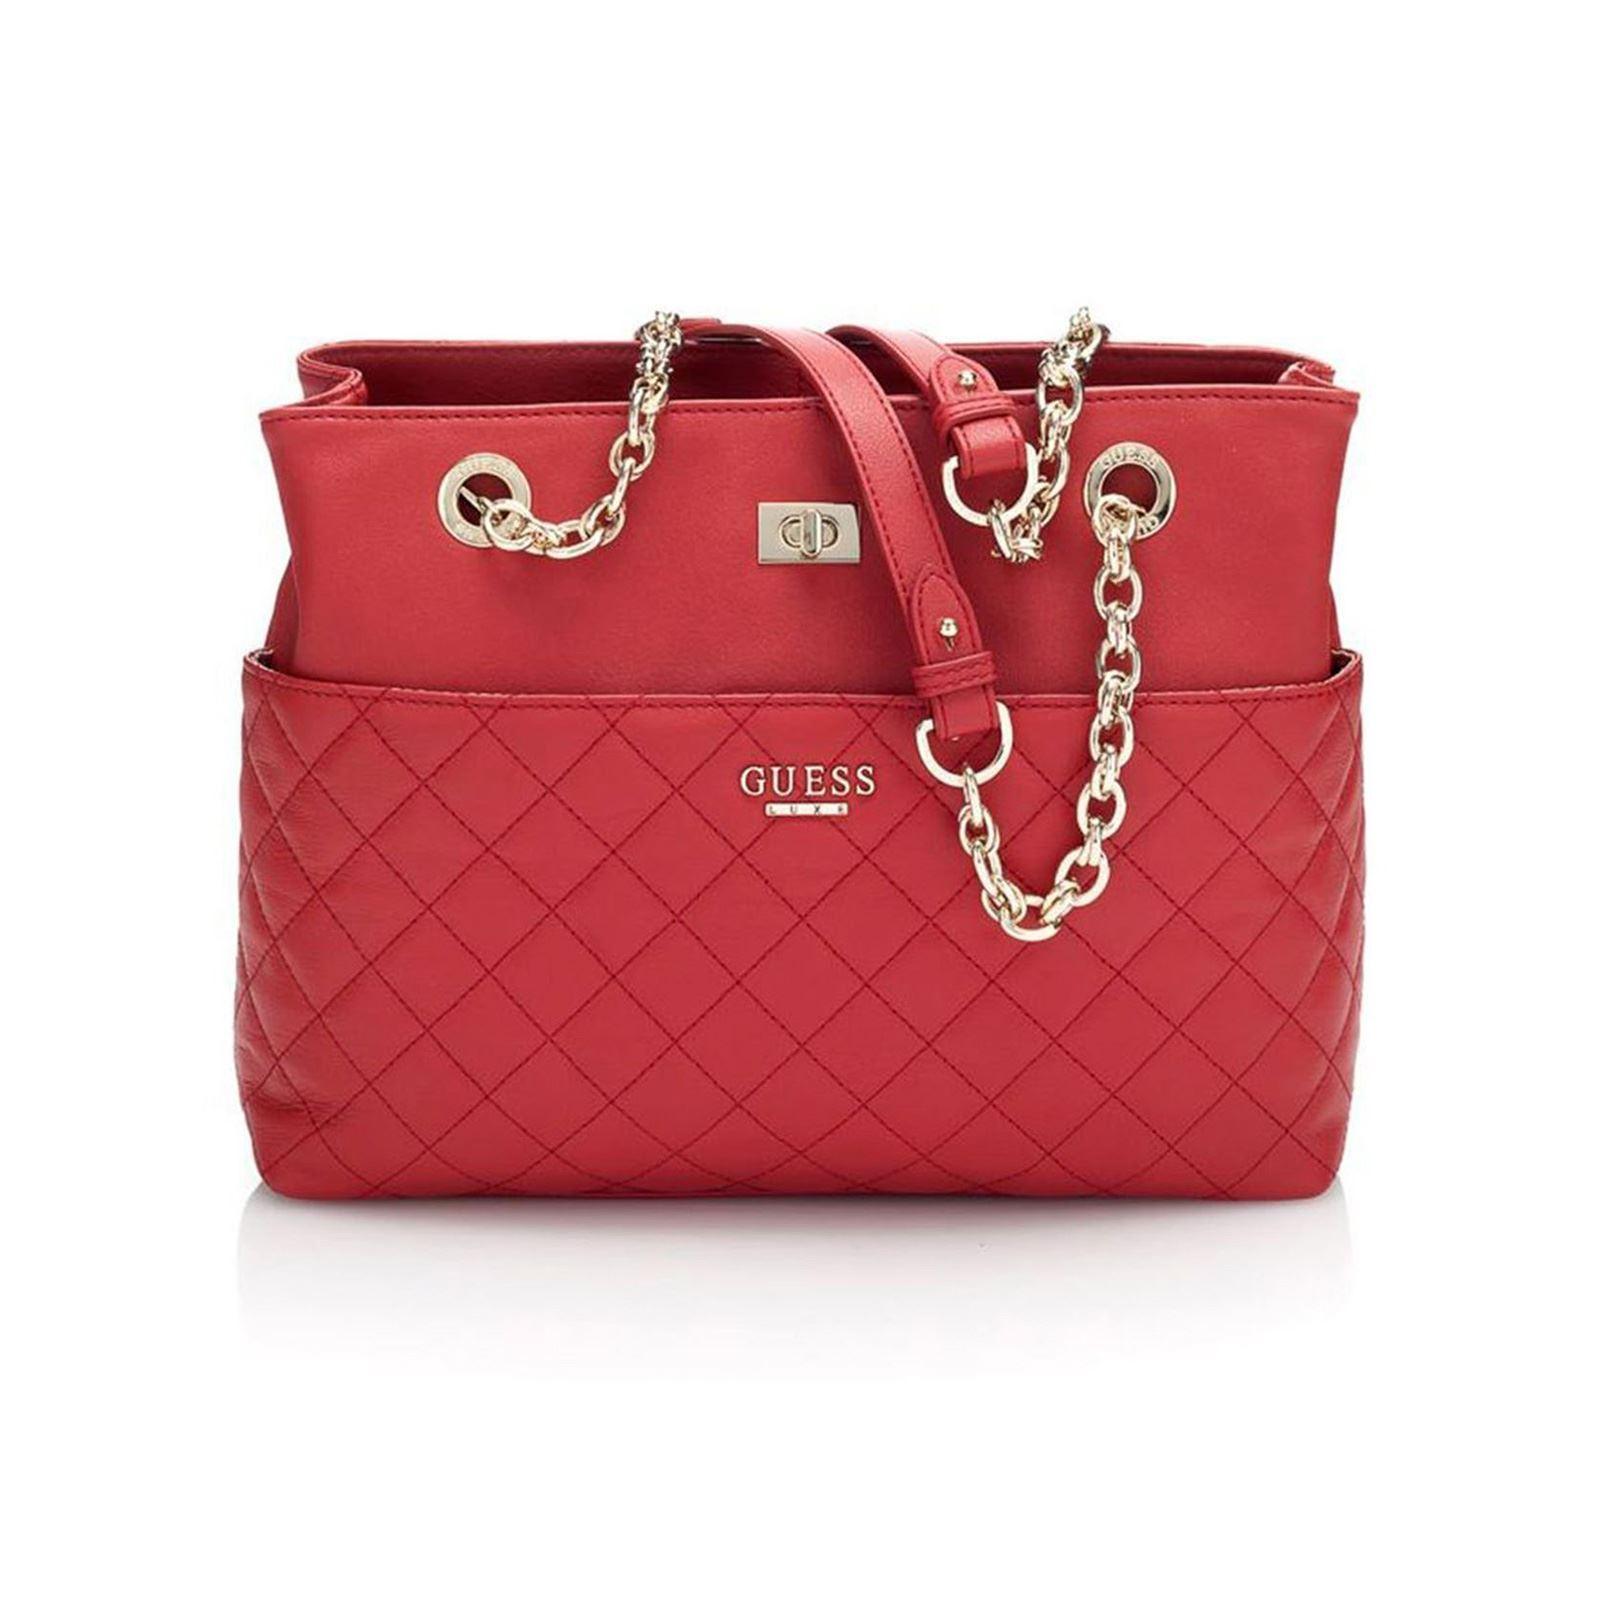 8a931323b6 Guess Suave Carryall - Sac - rouge | BrandAlley